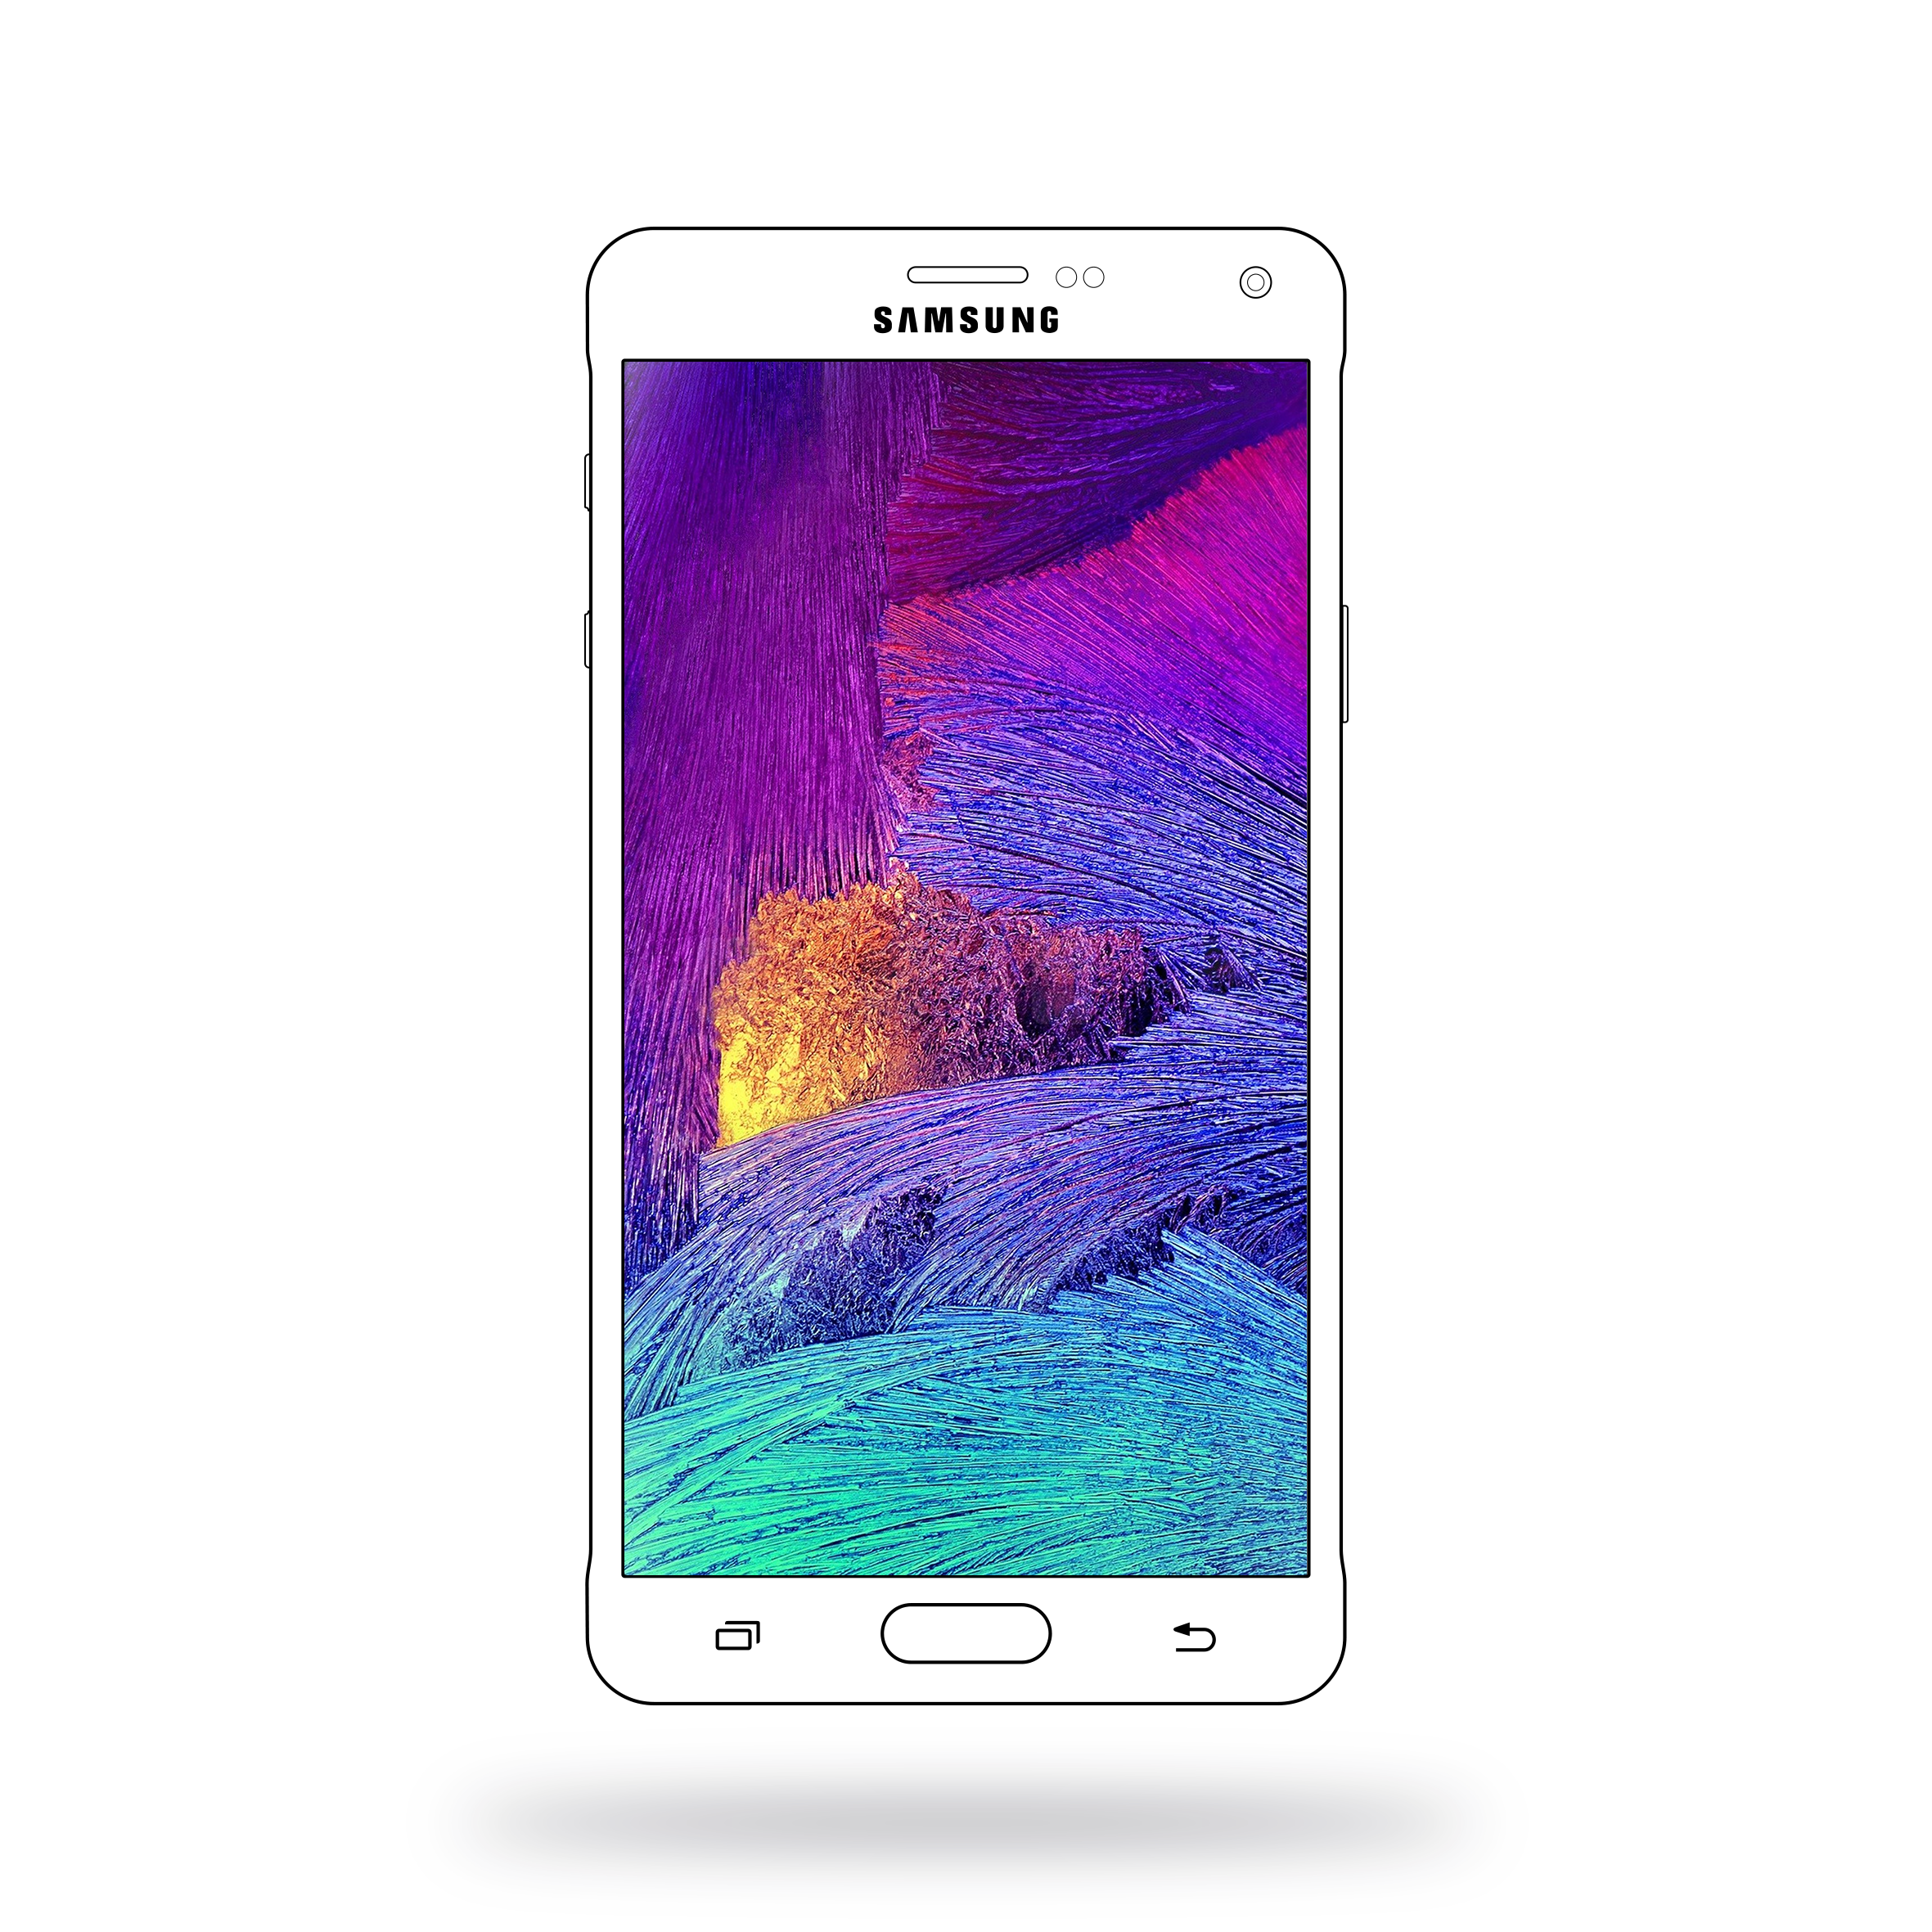 2361x2361 Samsung Galaxy Note 4 Vector Mockup